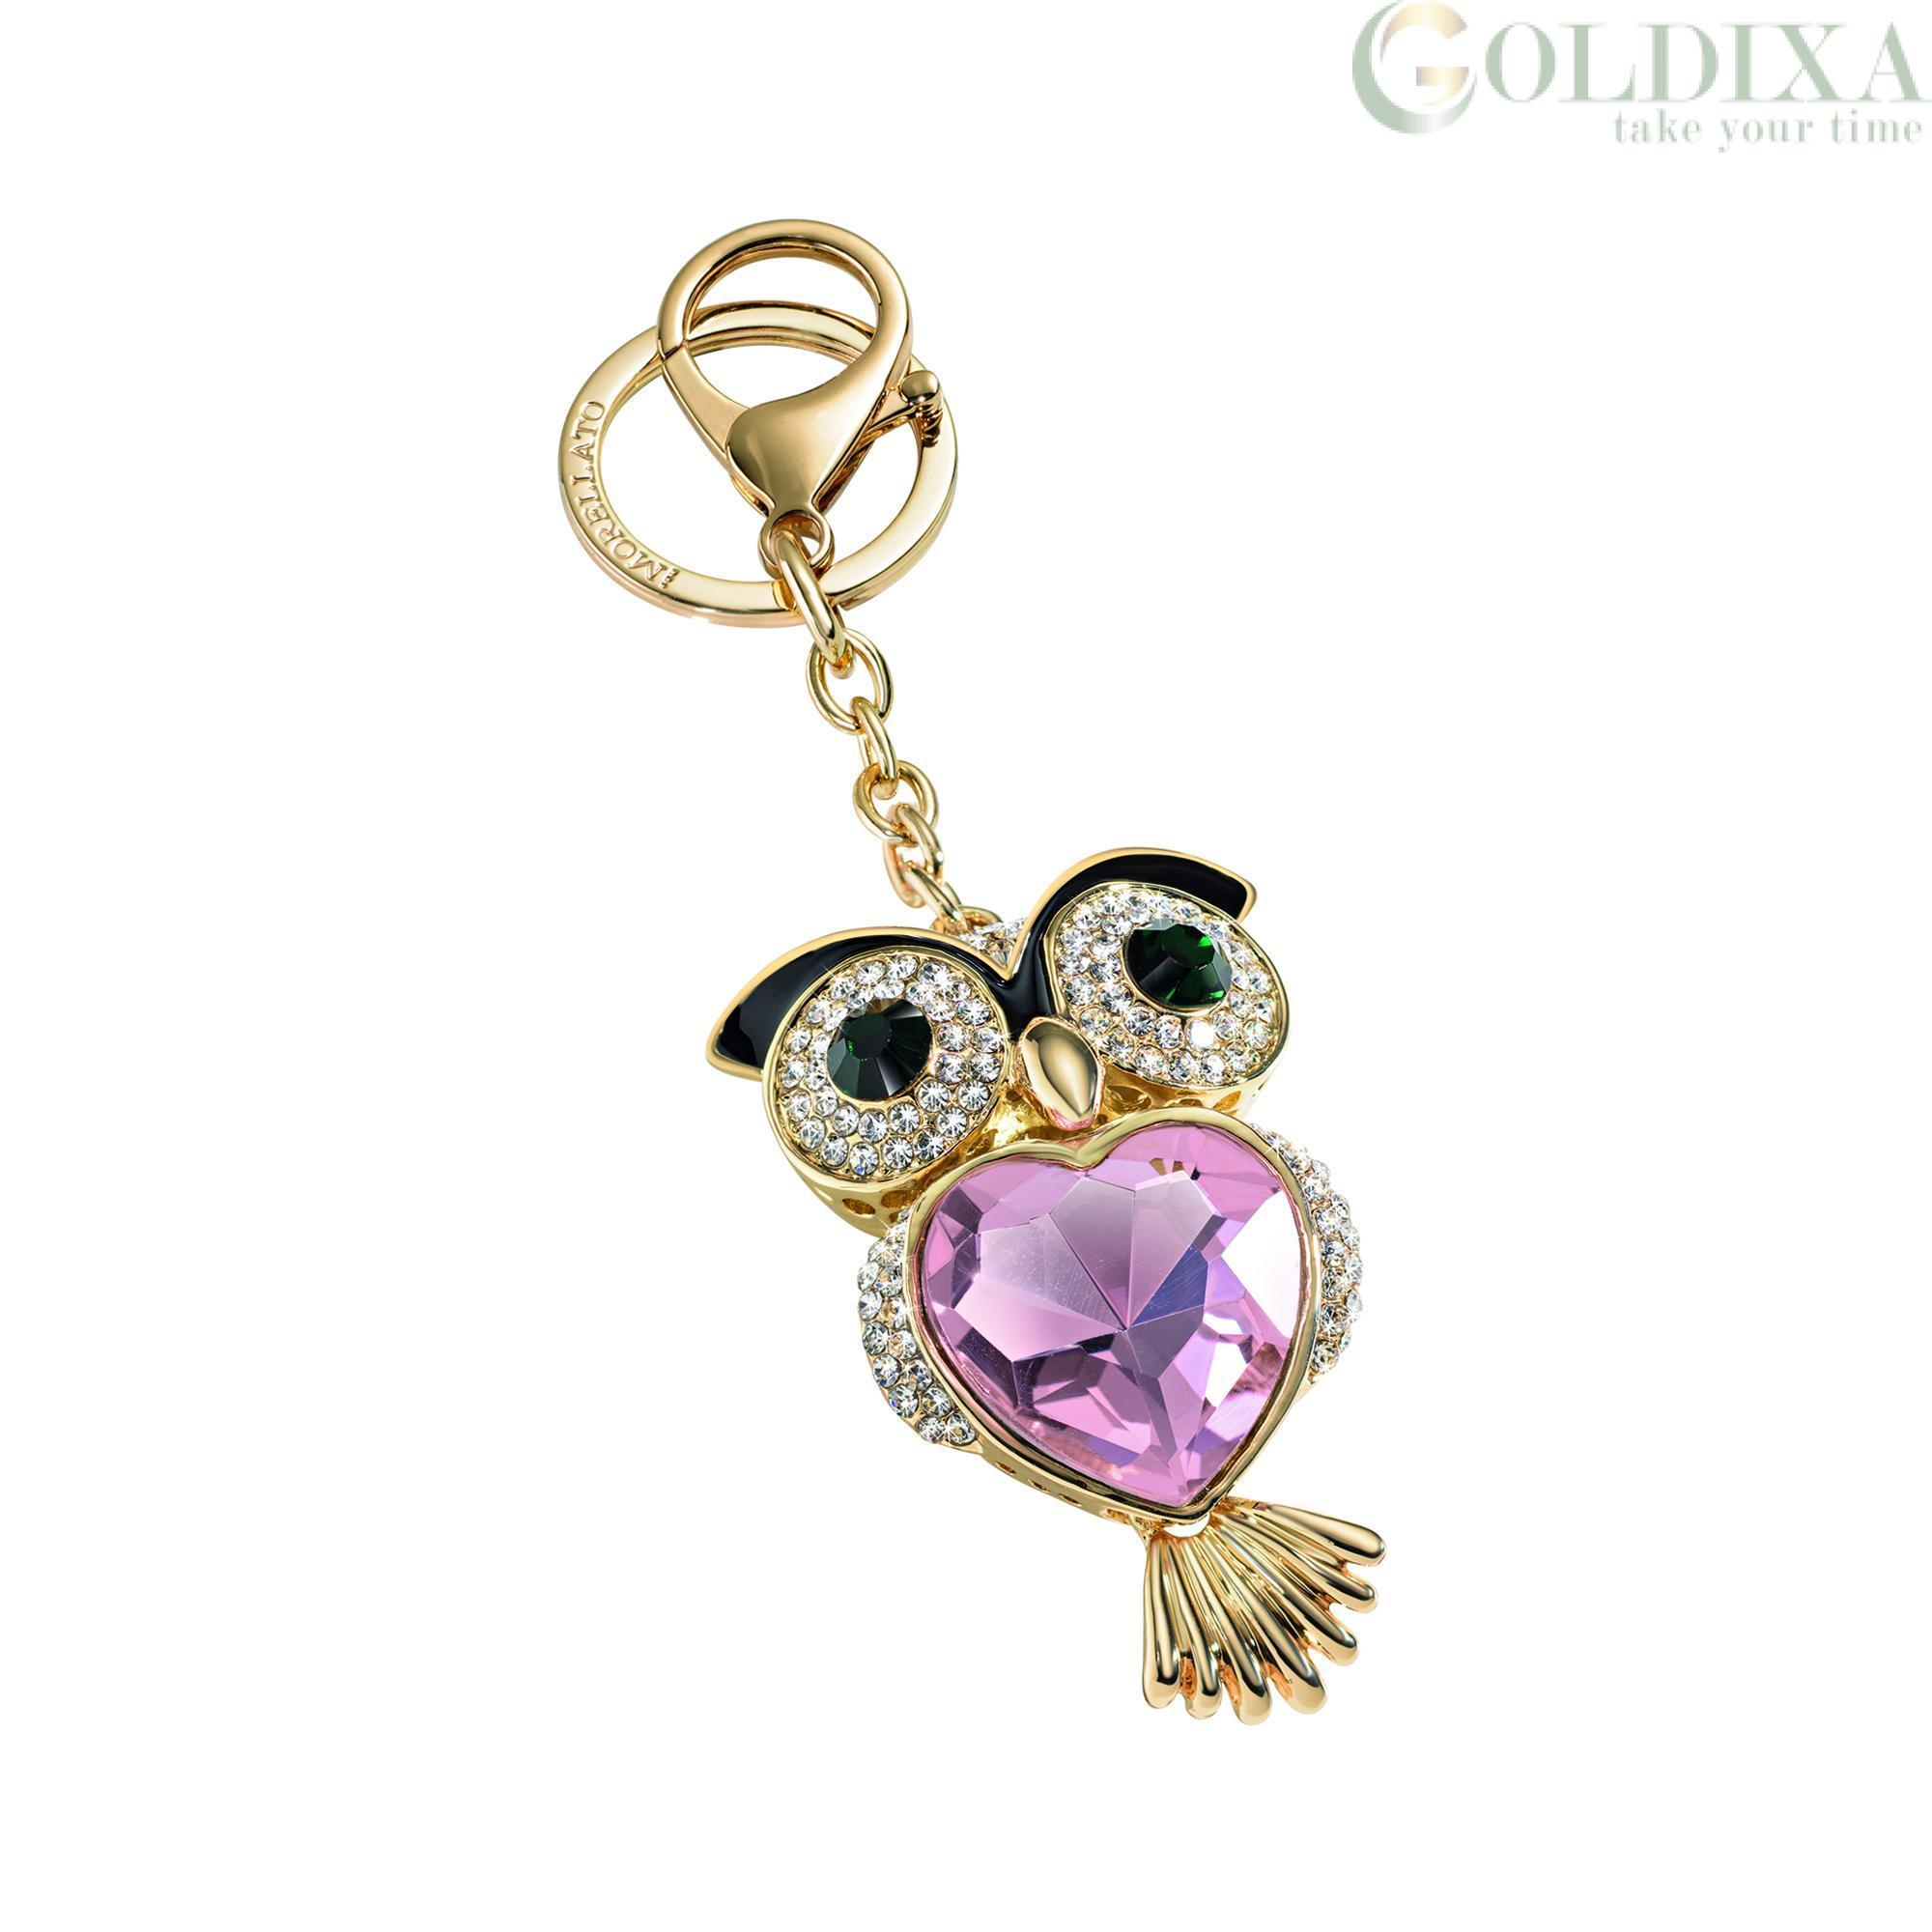 davvero economico dettagliare ordina online Jewelry: Morellato keyring woman SD0372 Magic collection